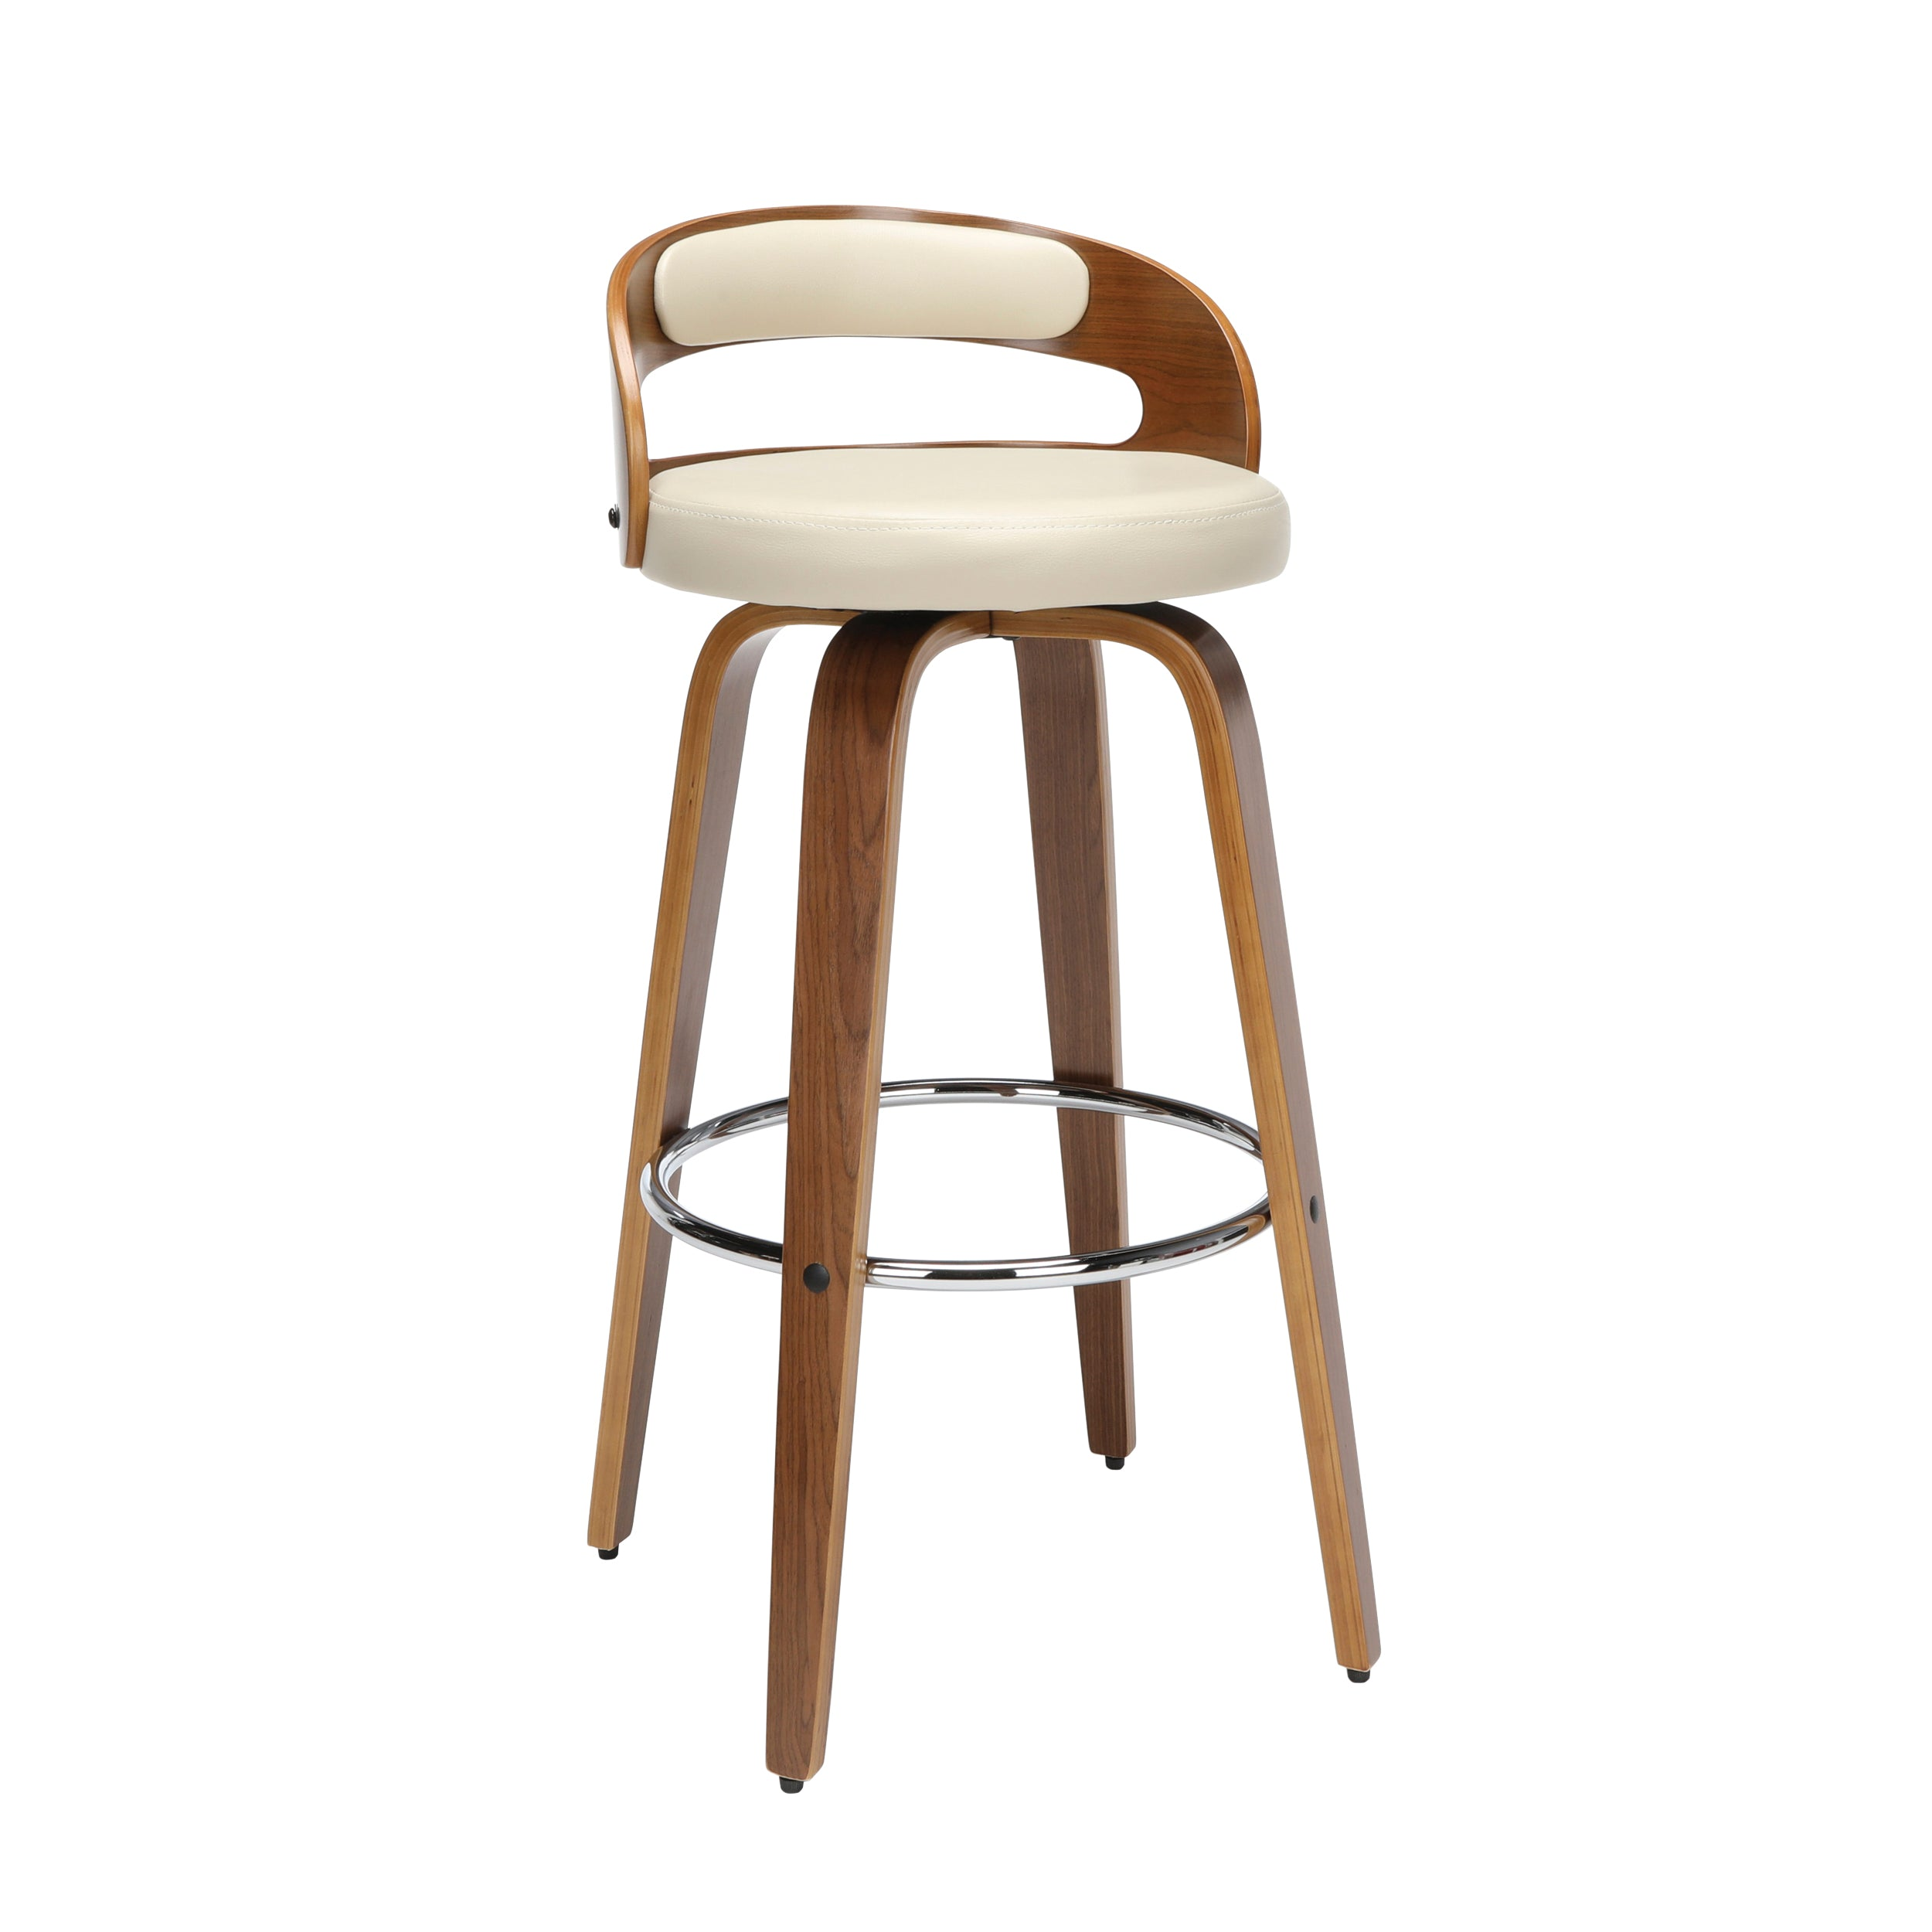 "30"" Low Back Bentwood Frame Swivel Seat Stool with Vinyl Cushion"